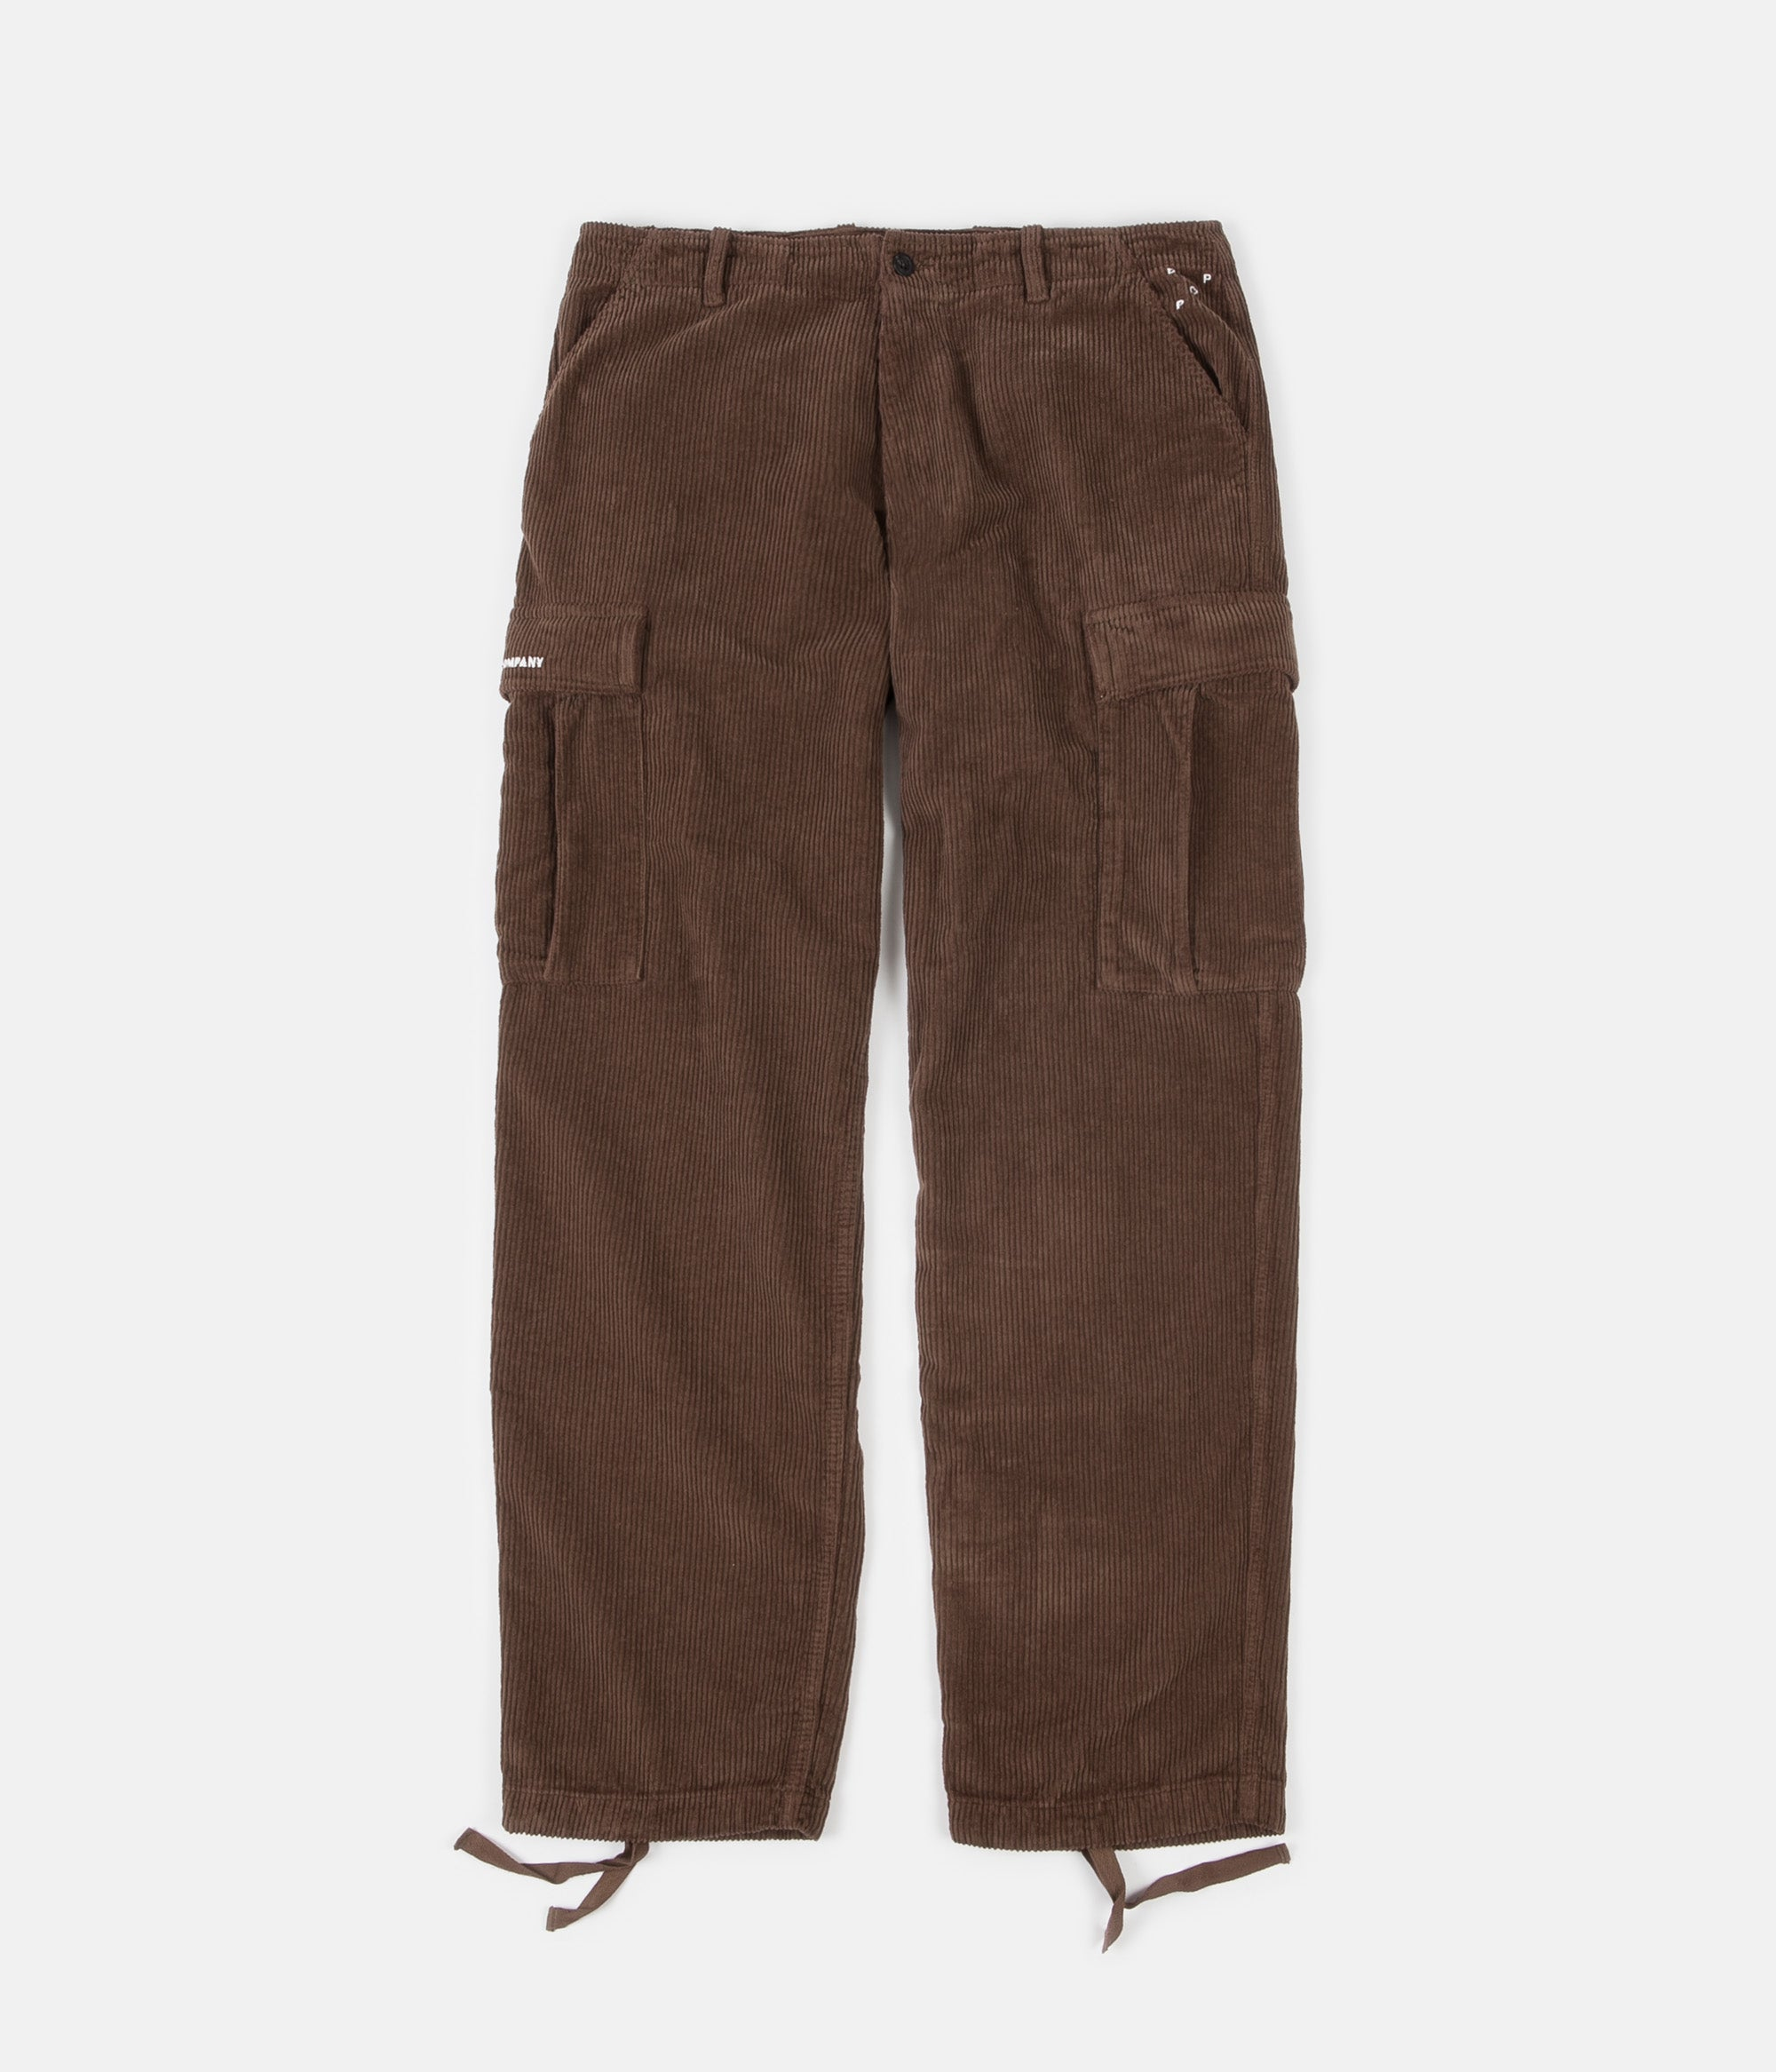 Pop Trading Company Cord Cargo Pants - Brown